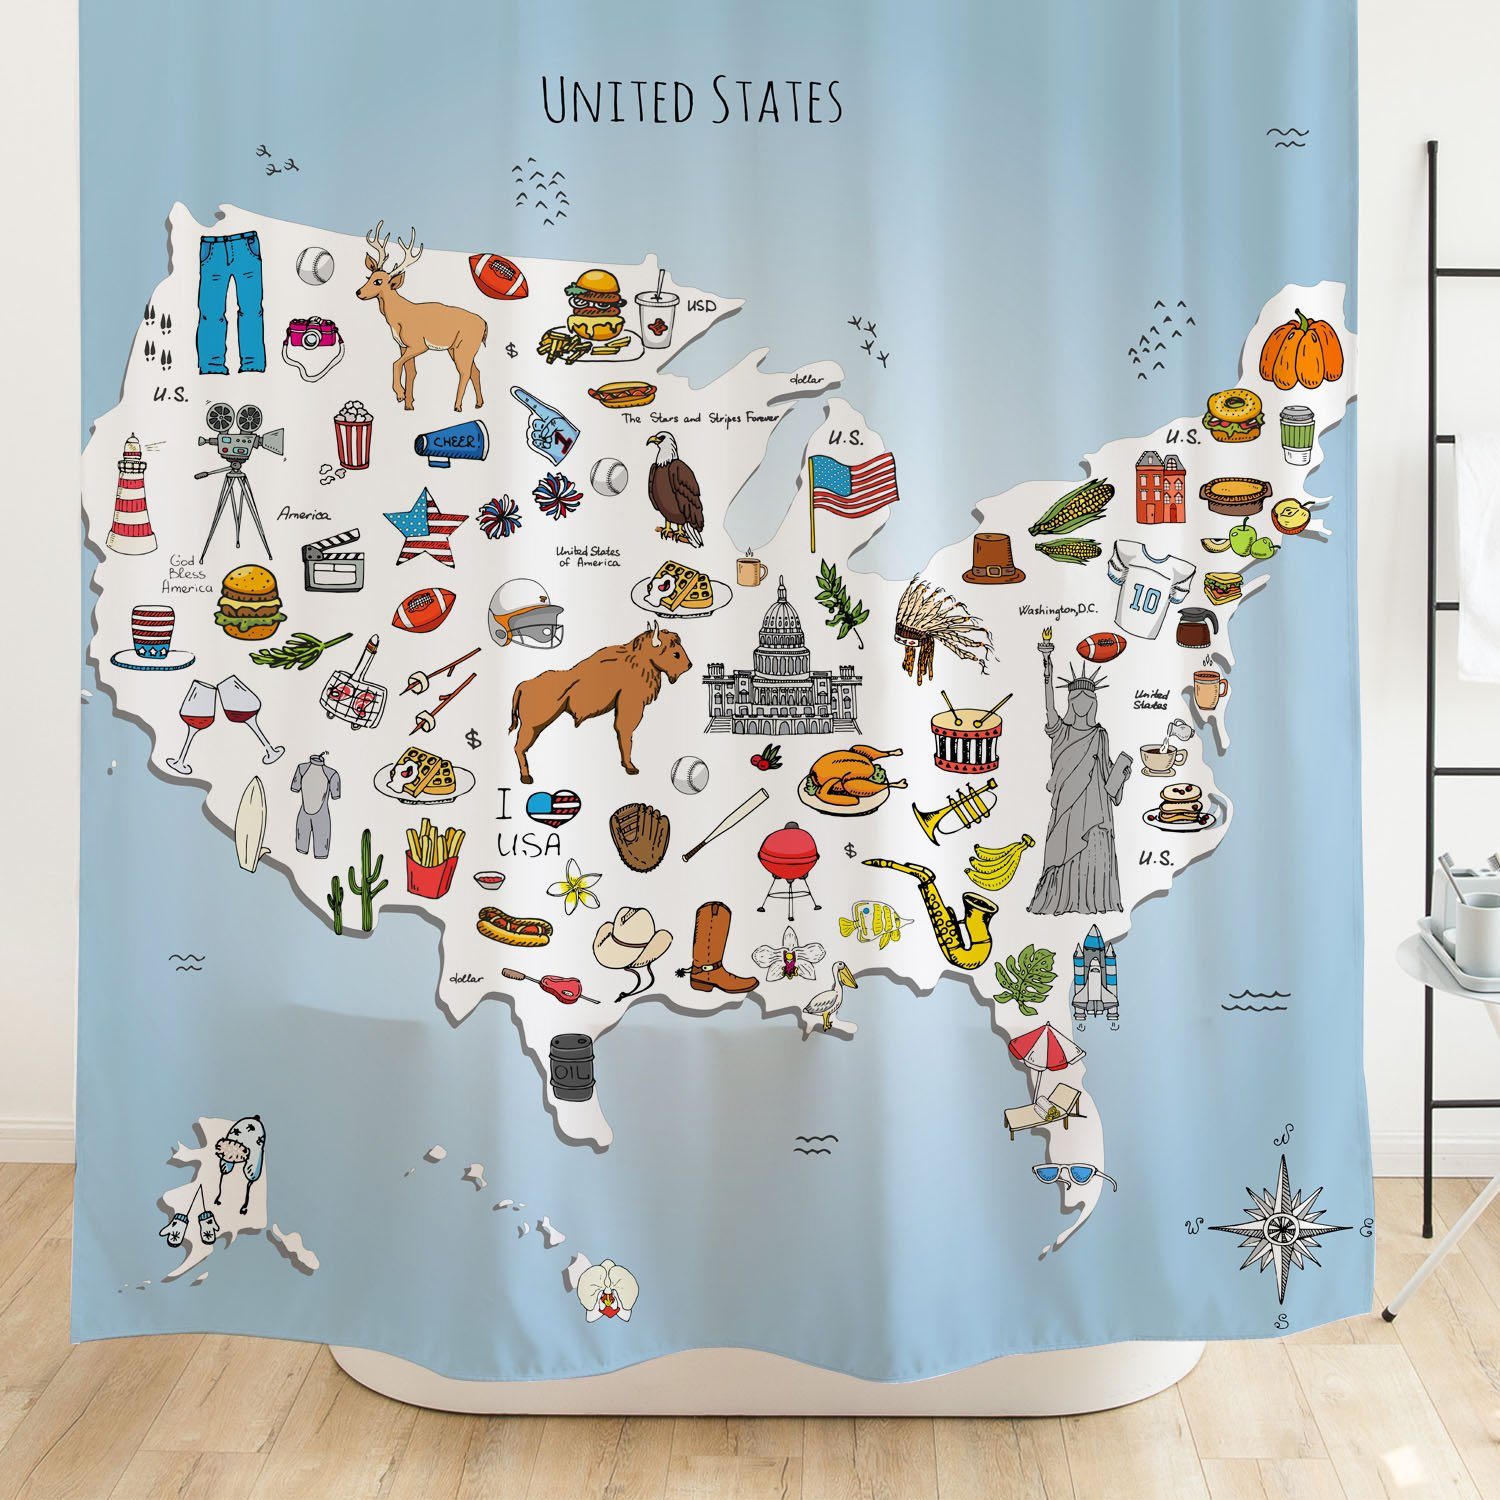 Orange Design USA Map Shower Curtain for Kids Bathroom 71''x71'', Cartoon America Animals Food Fun Facts, Fabric Decor with Hooks Home Decor, Waterproof Mildew-Resistant